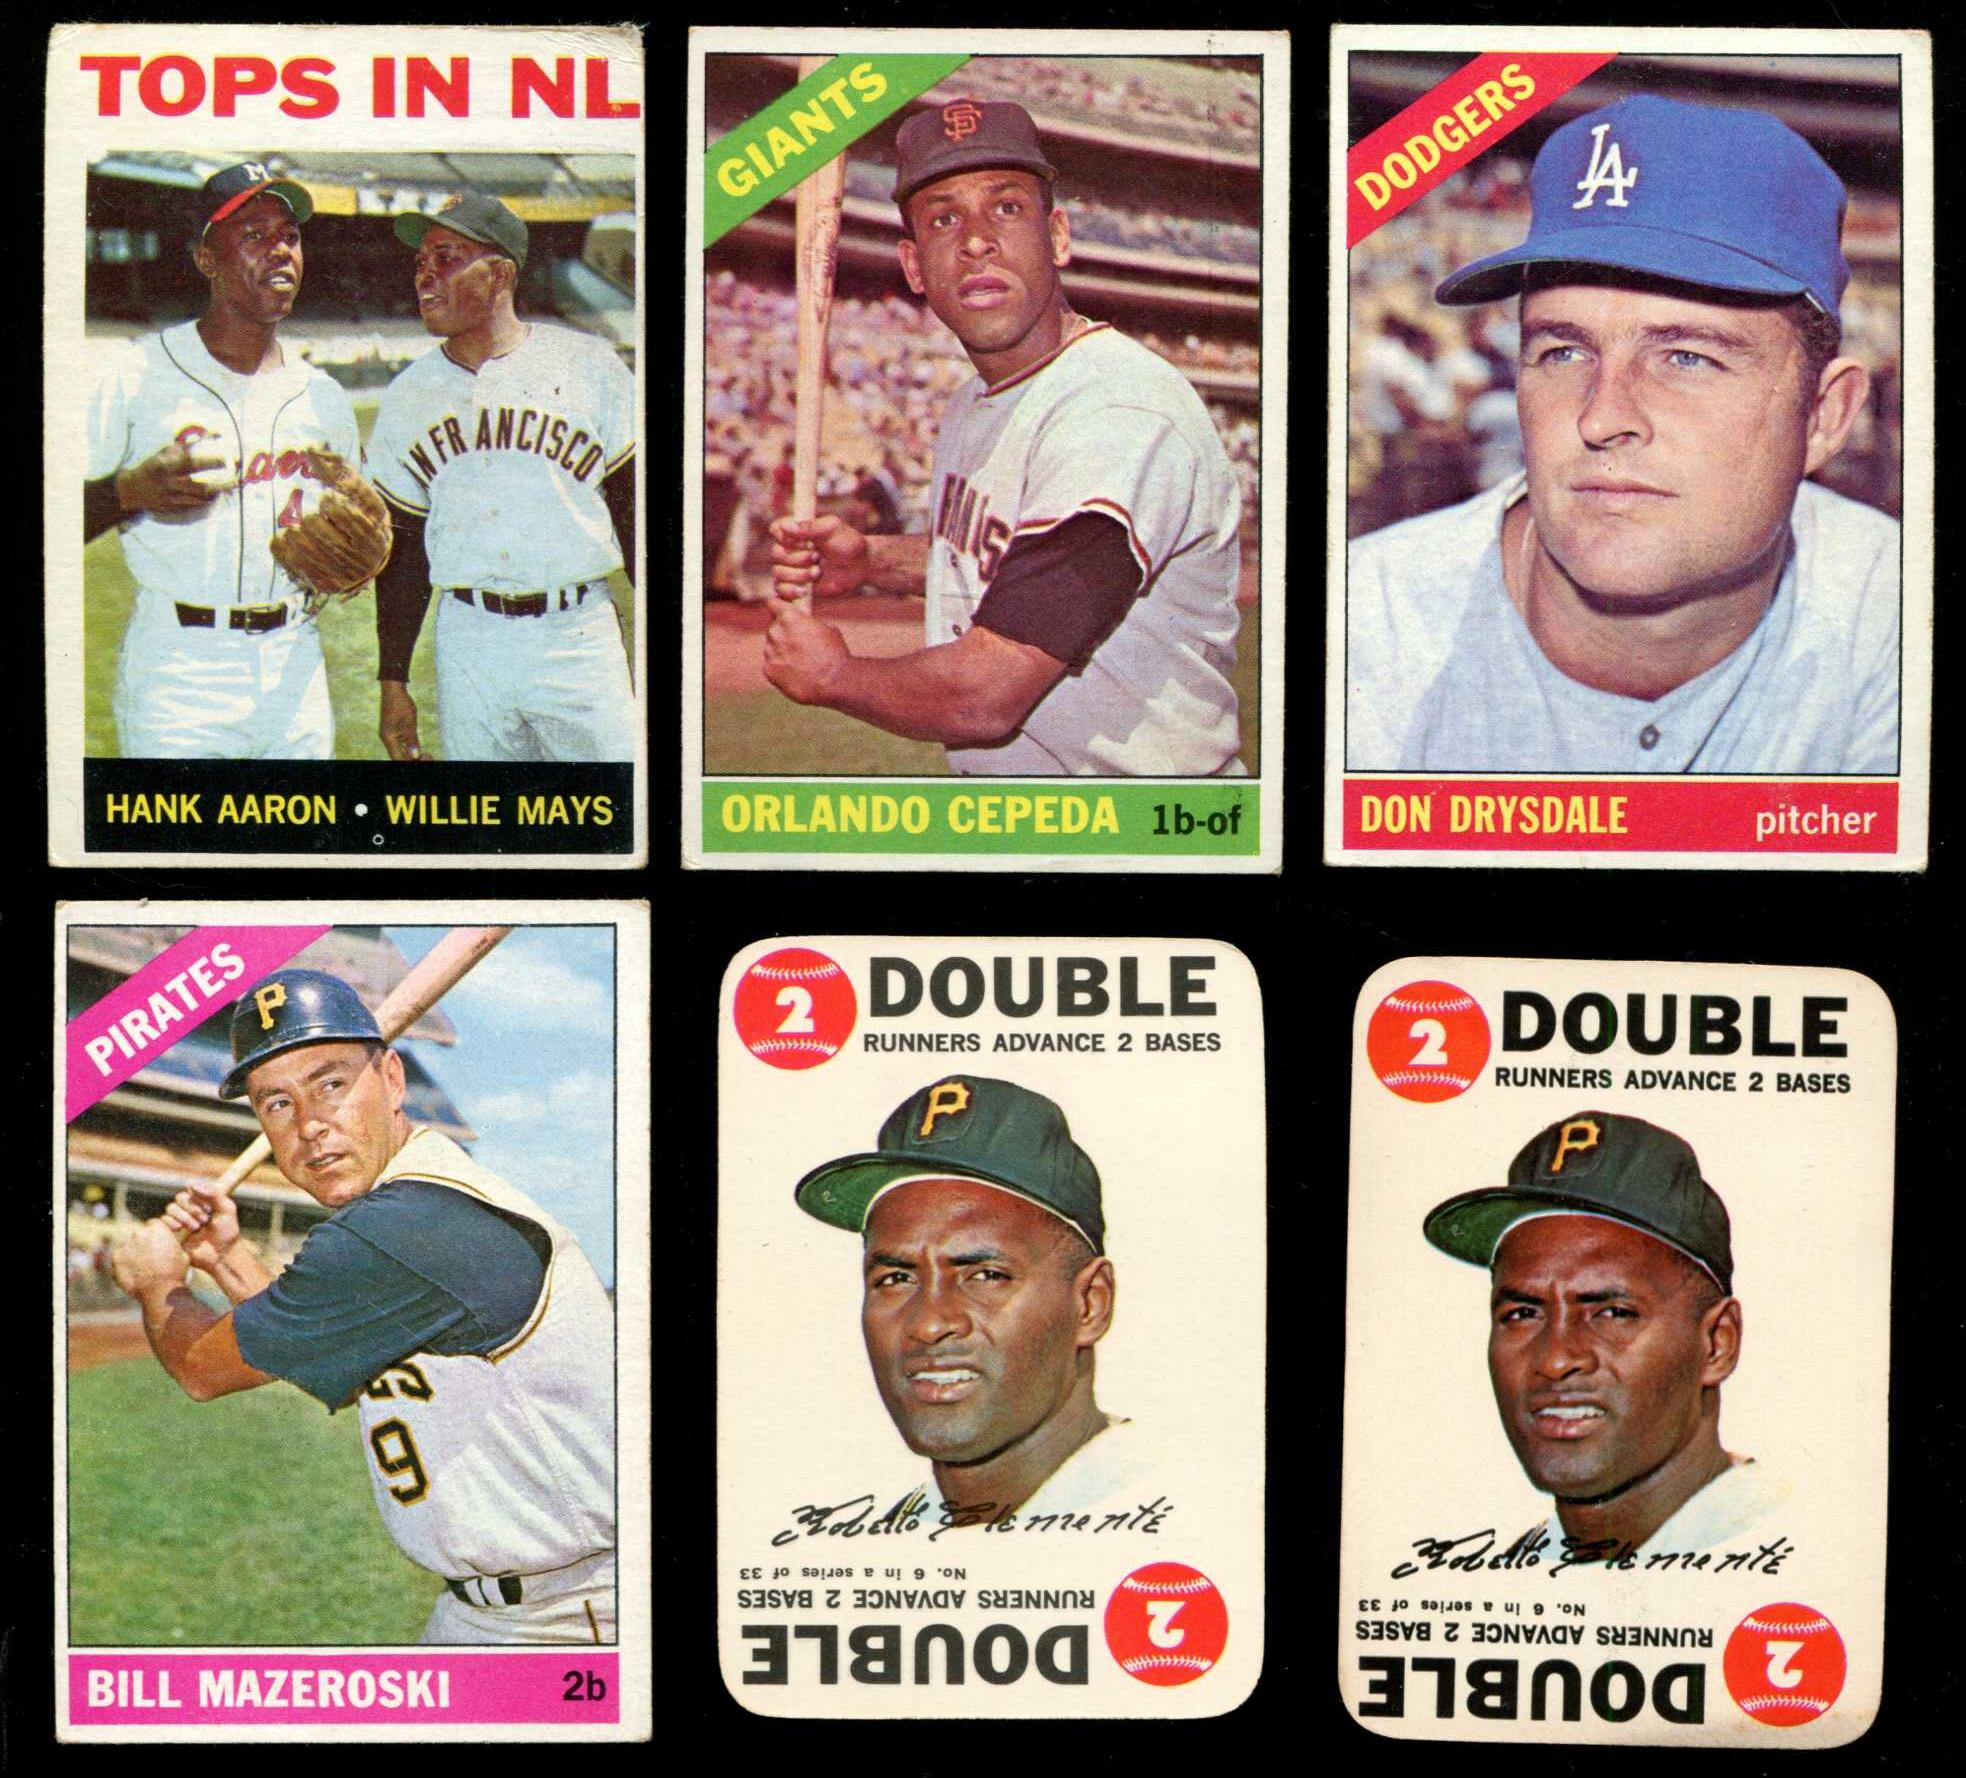 1964 Topps #423 'Tops in N.L.' (Hank Aaron/Willie Mays)[#r] (Braves/Giants) Baseball cards value